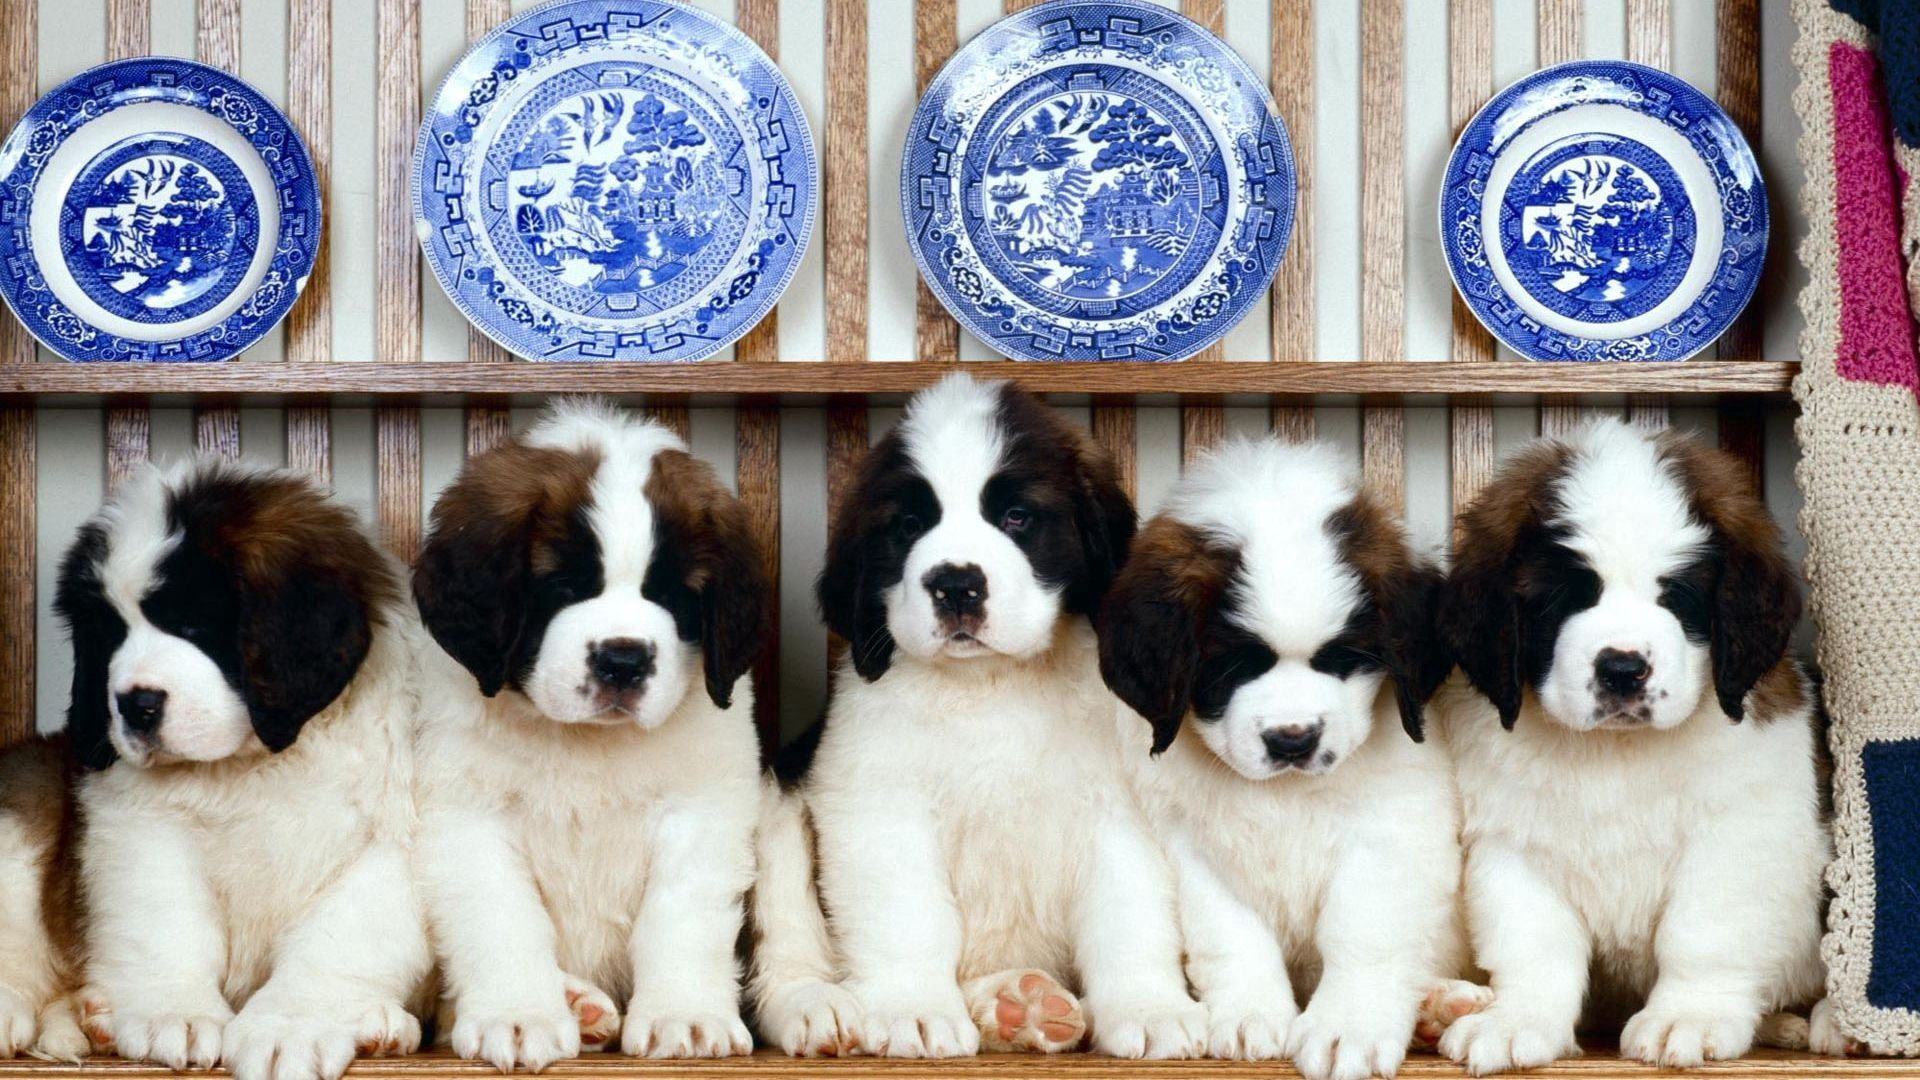 151864 download wallpaper Animals, Puppies, Sit, Dogs screensavers and pictures for free